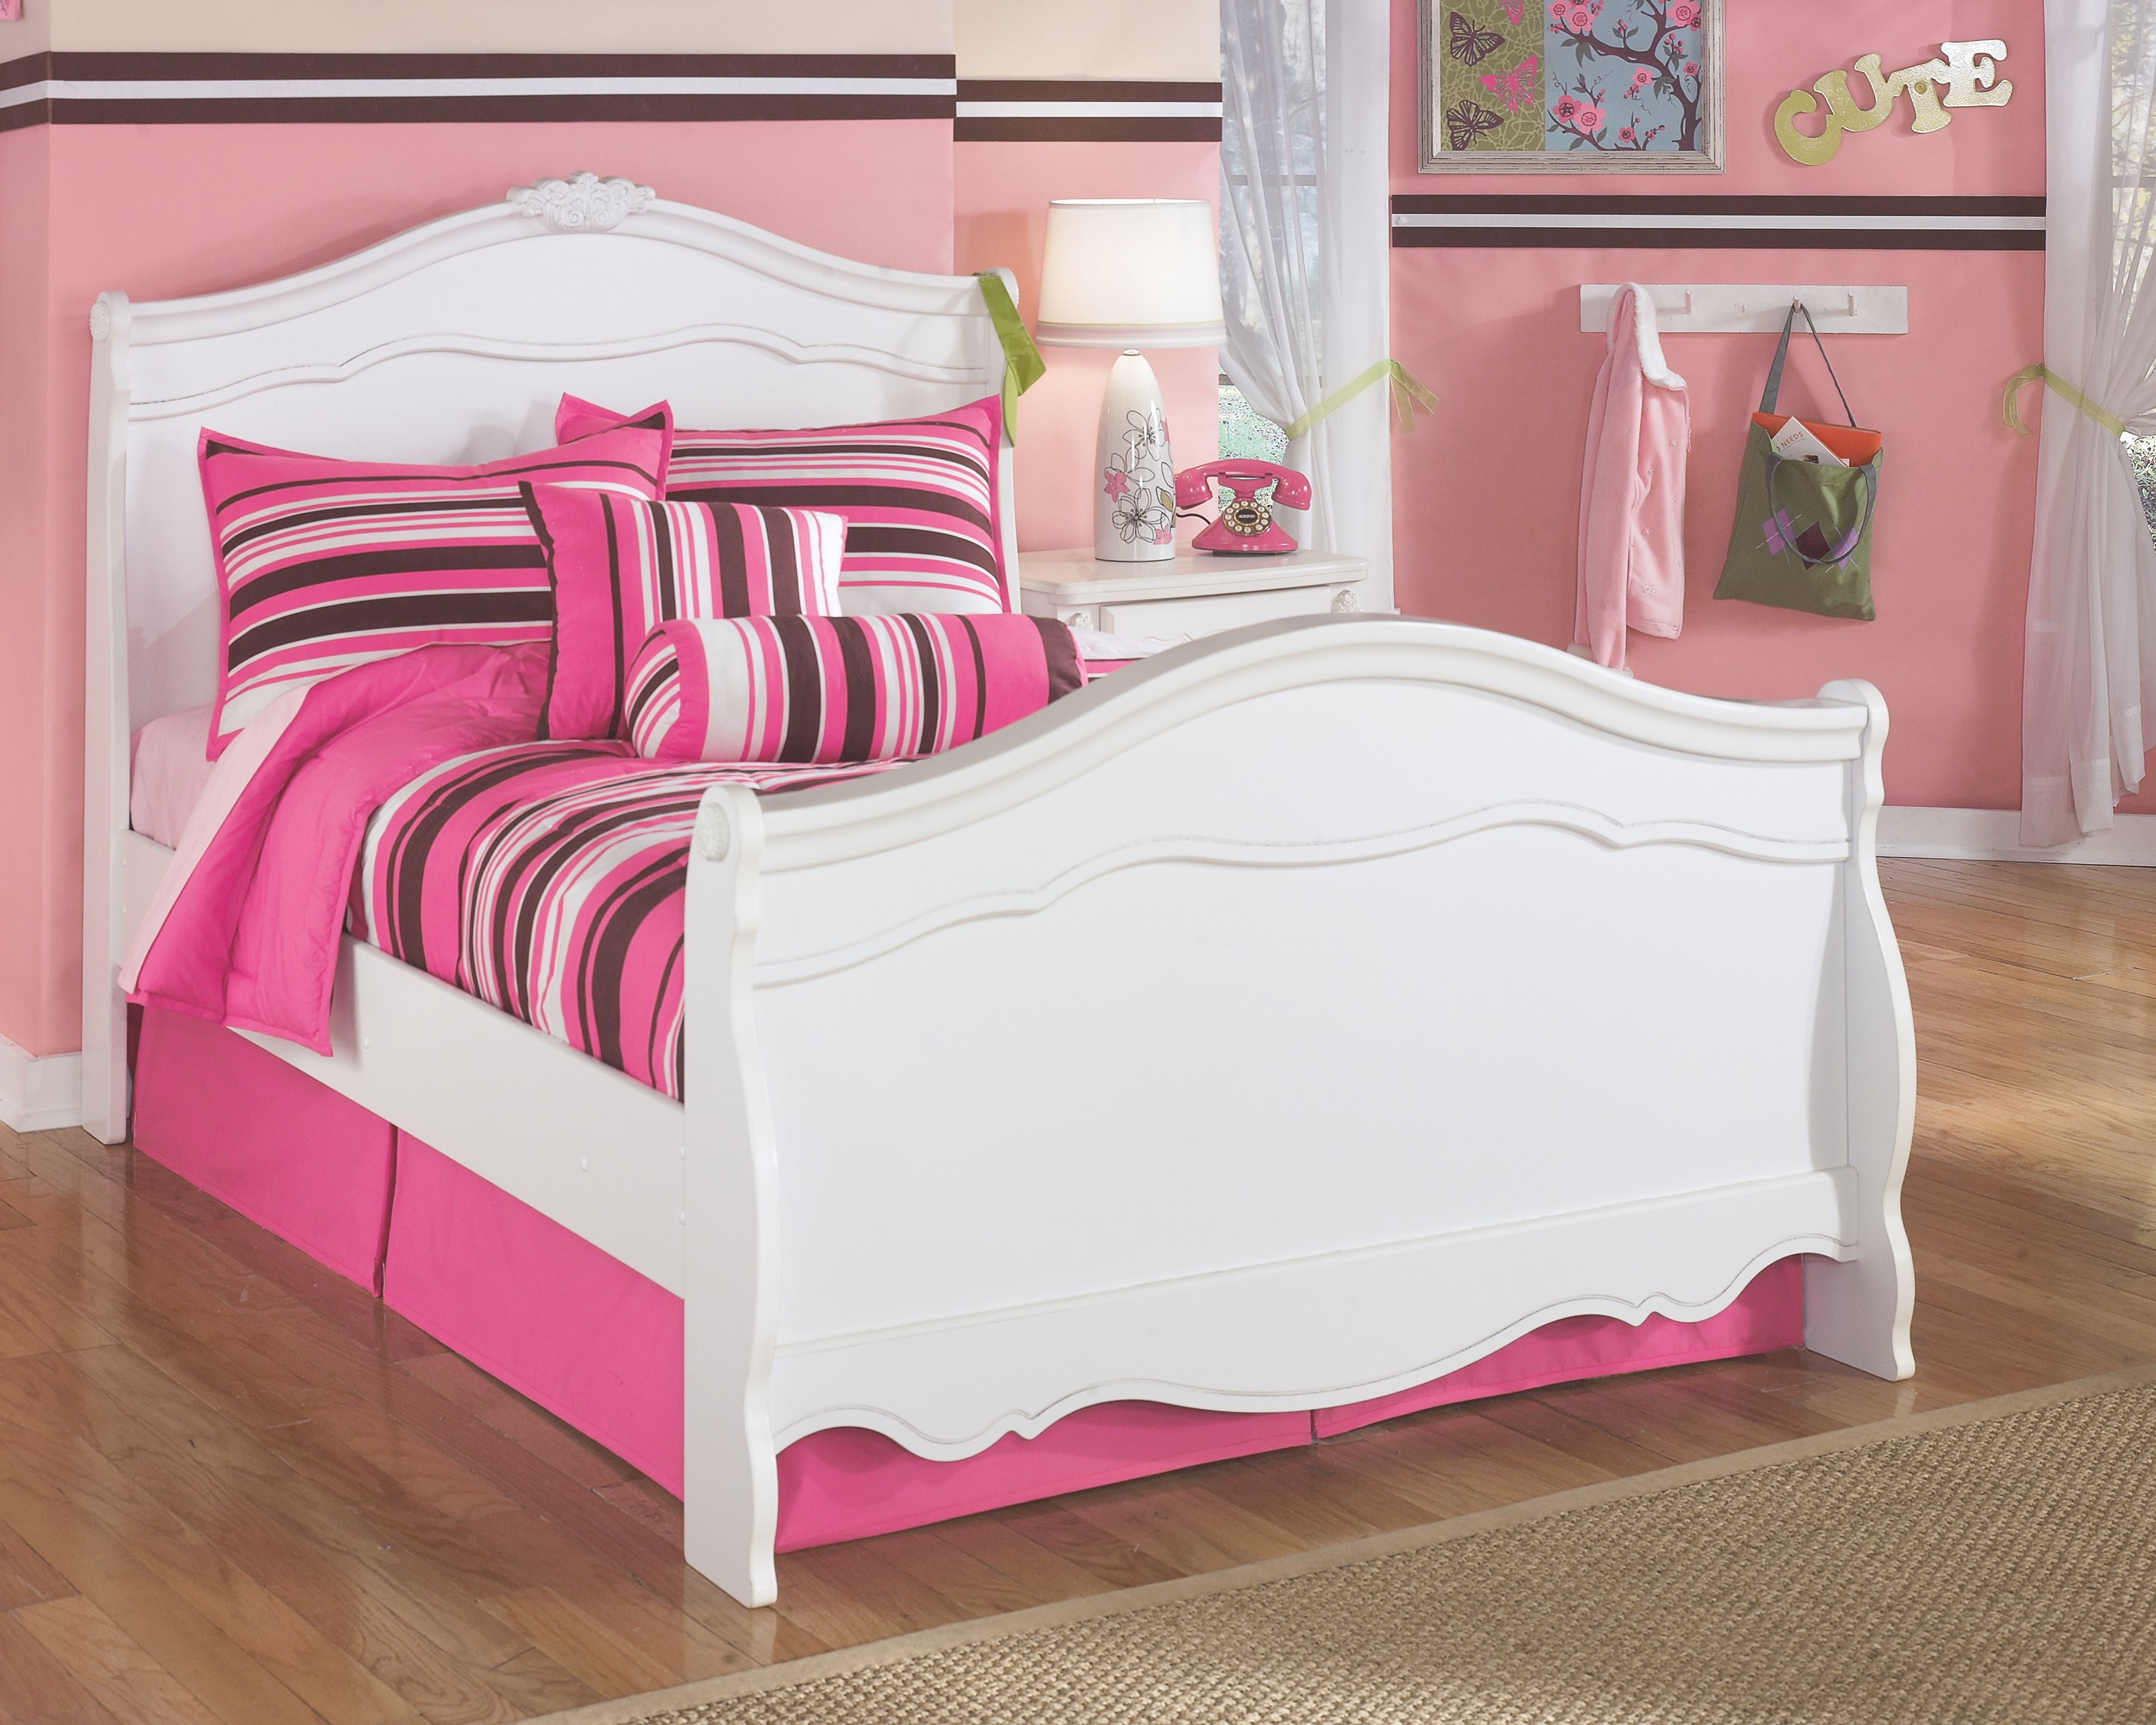 Exquisite Full Sleigh Bed, White Sleigh beds, Kids